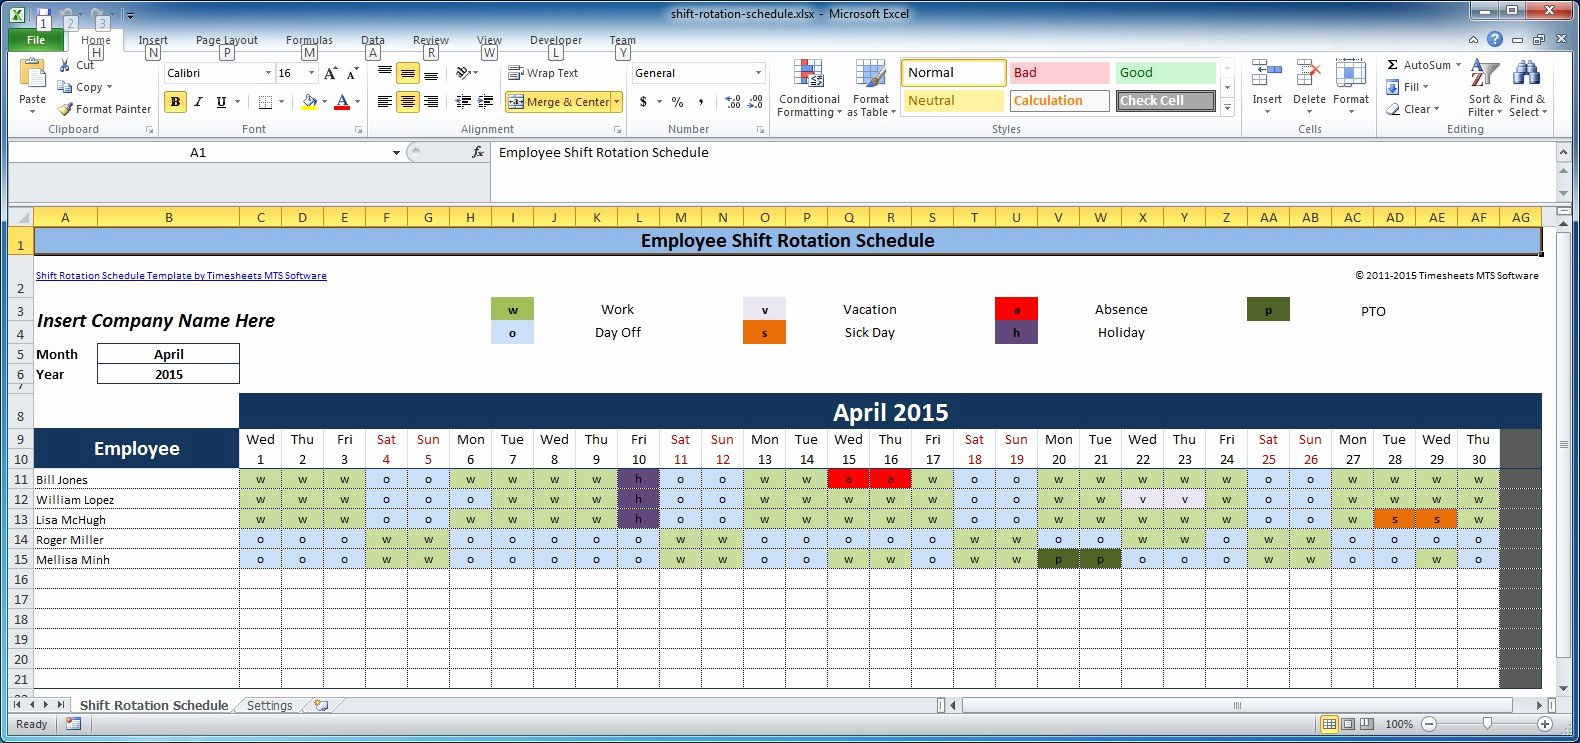 Excel Work Schedule Template Awesome Free Employee and Shift Schedule Templates